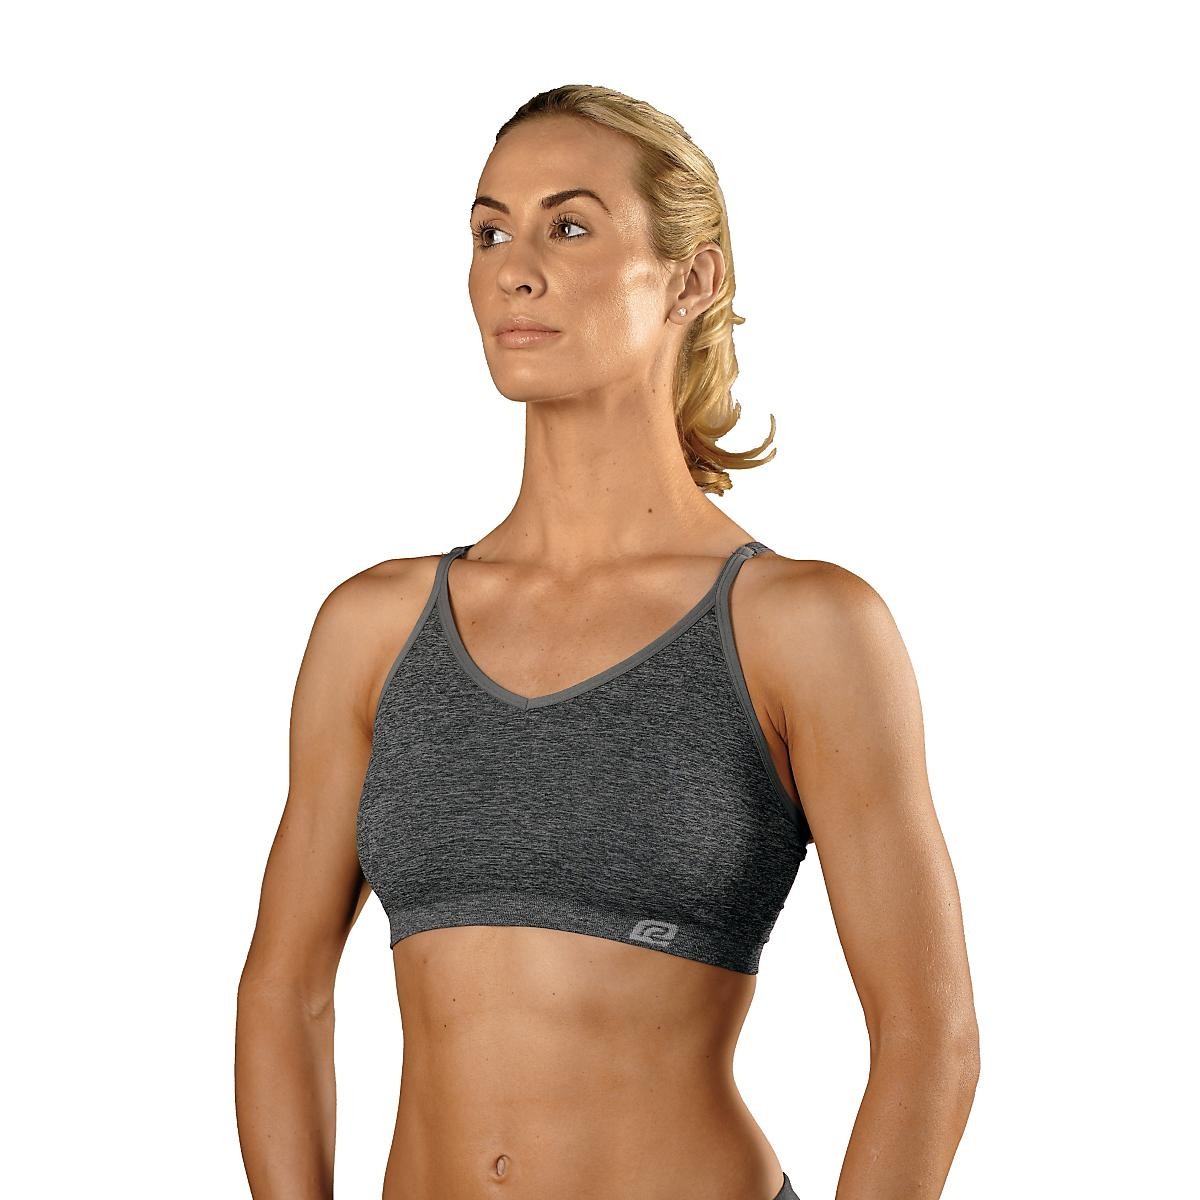 7c3d4ce8feca1 Womens ROAD RUNNER SPORTS Undercover Seamless Cami Inner Bras at Road  Runner Sports